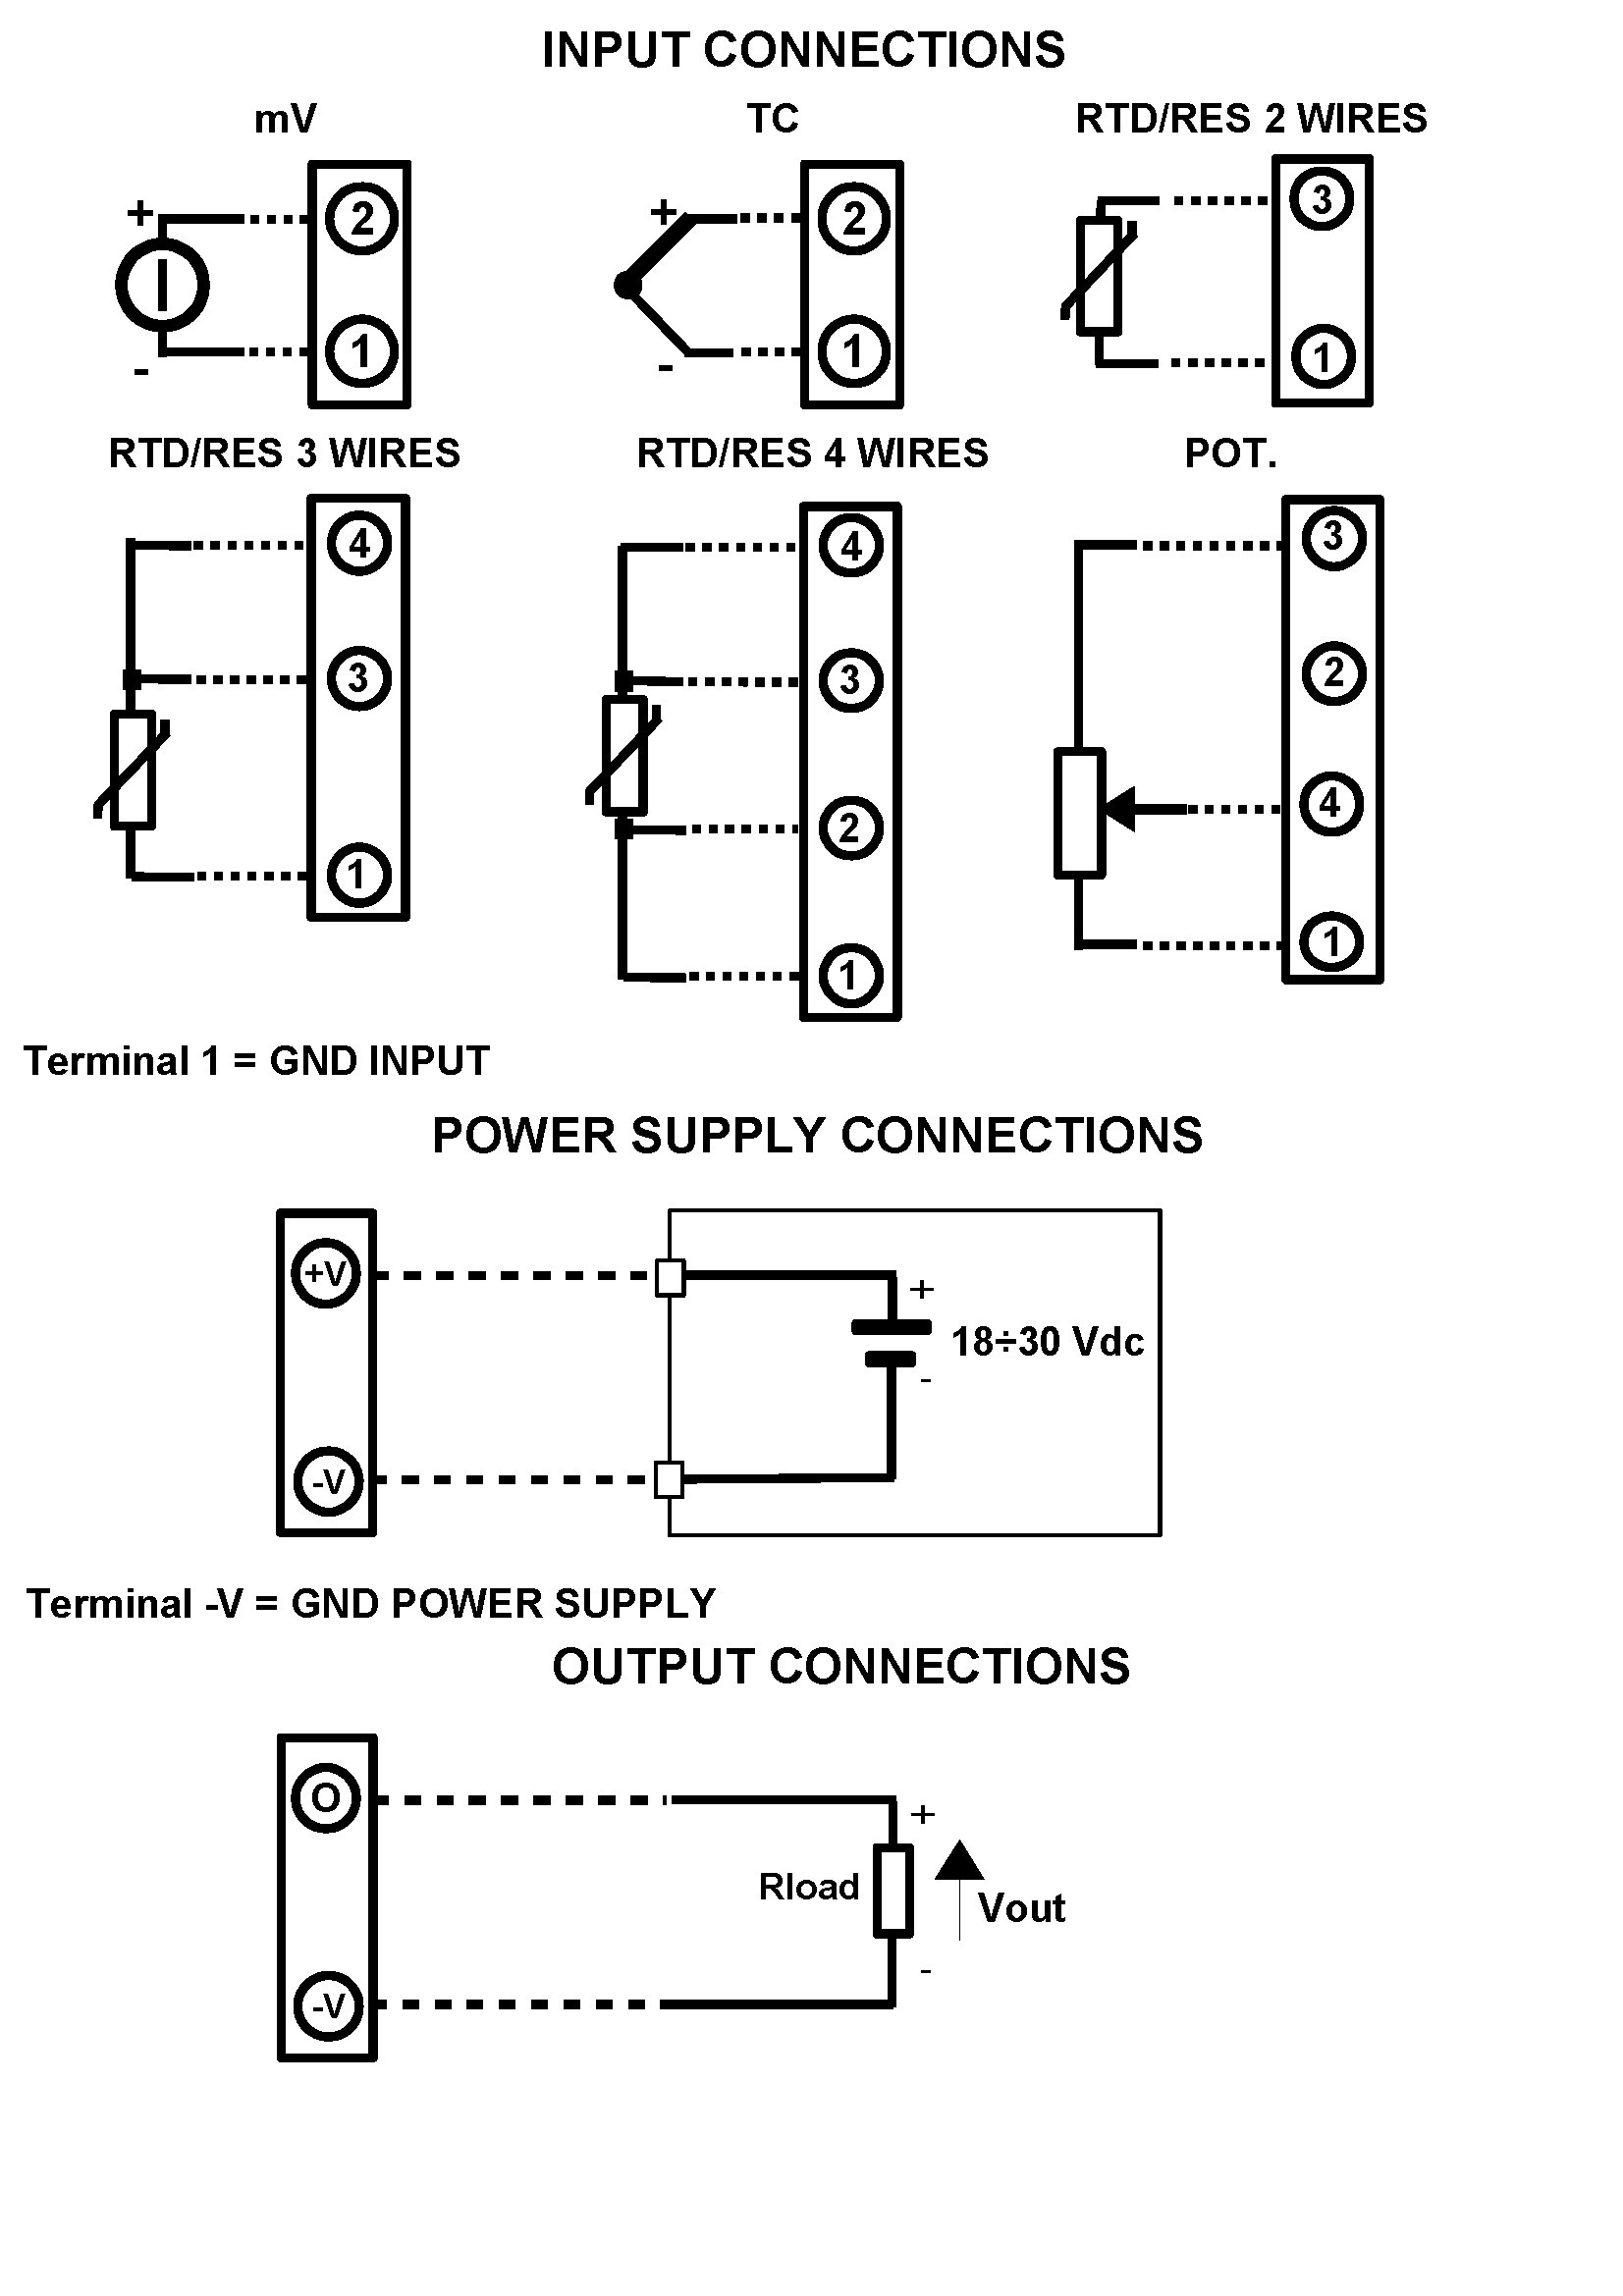 2 Wire Submersible Well Pump Wiring Diagram - Webtor - 2 Wire Submersible Well Pump Wiring Diagram